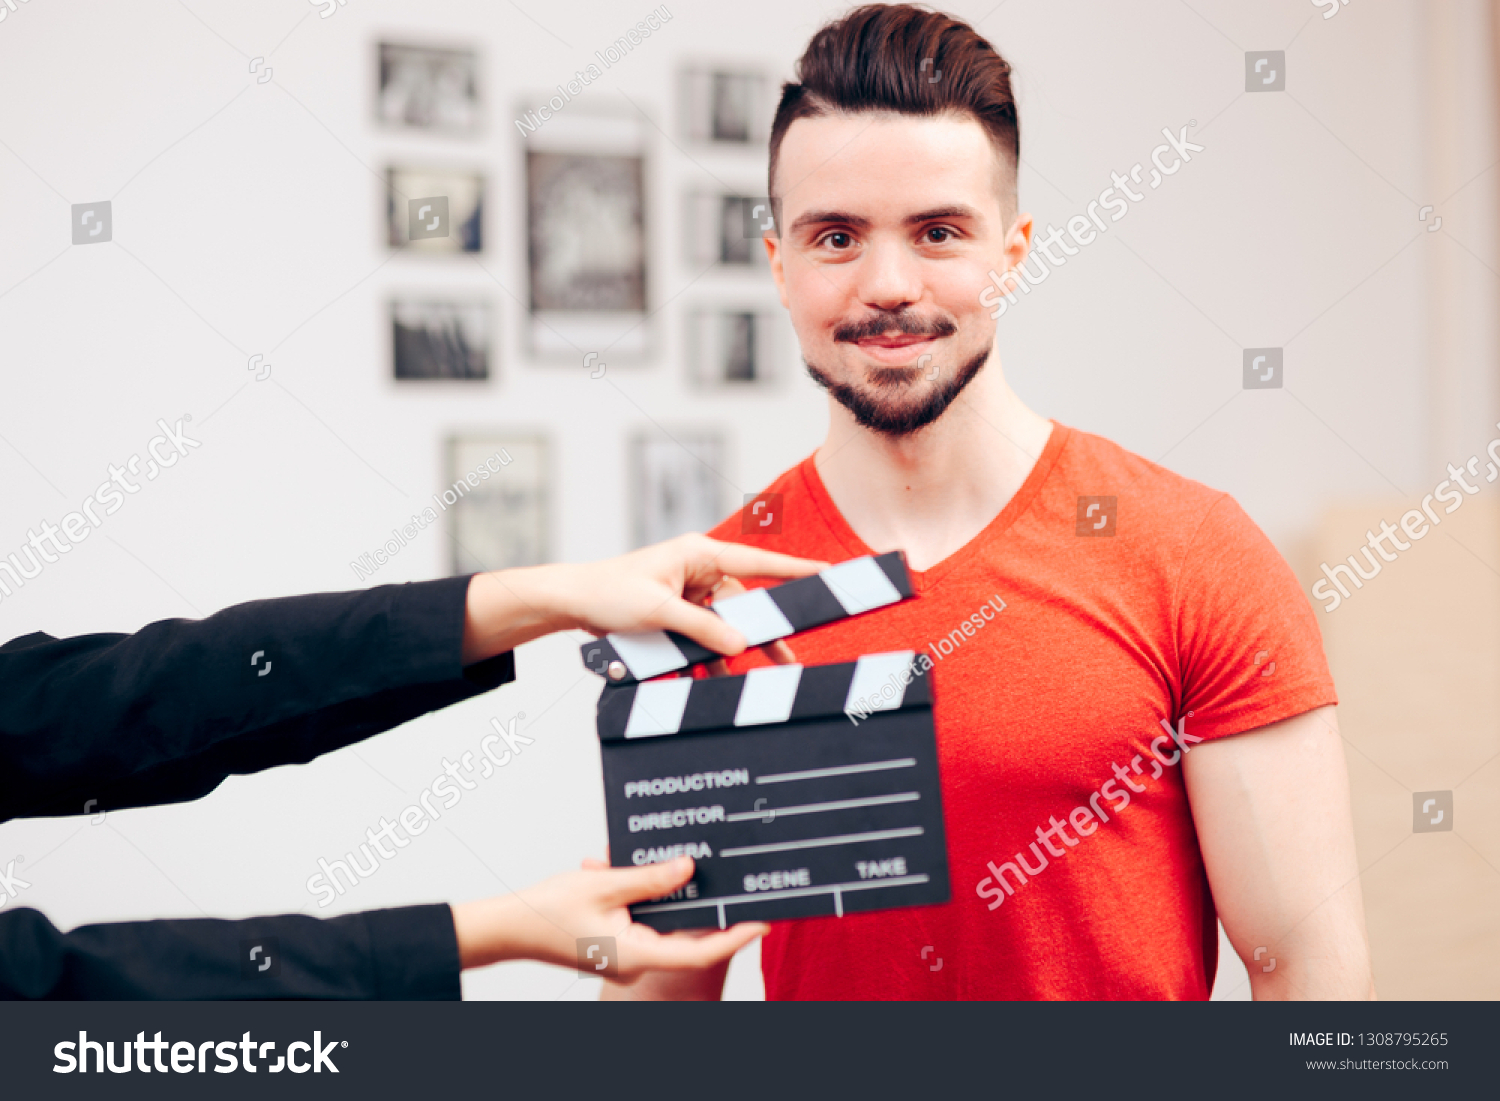 Male Actor Casting Agency Filming Demo Stock Photo (Edit Now) 1308795265